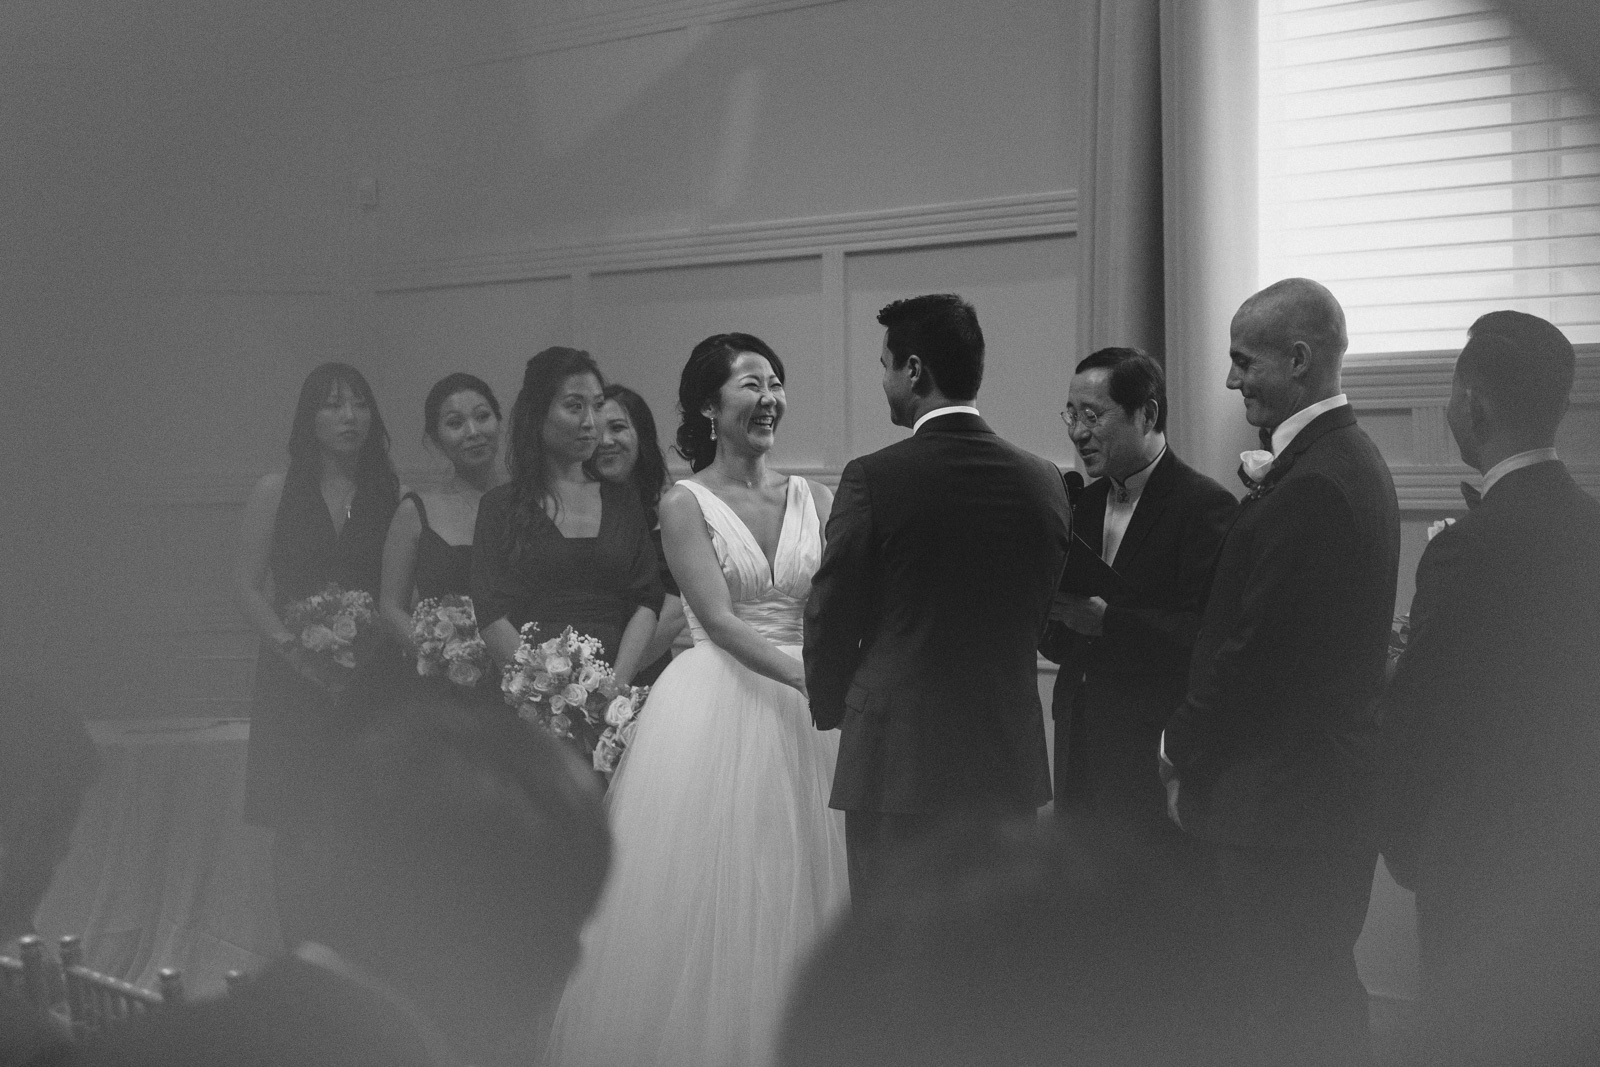 vaughn-wedding-photography-images-by-nick-driver-and-sath-arul-of-artanis-collective_25.jpg